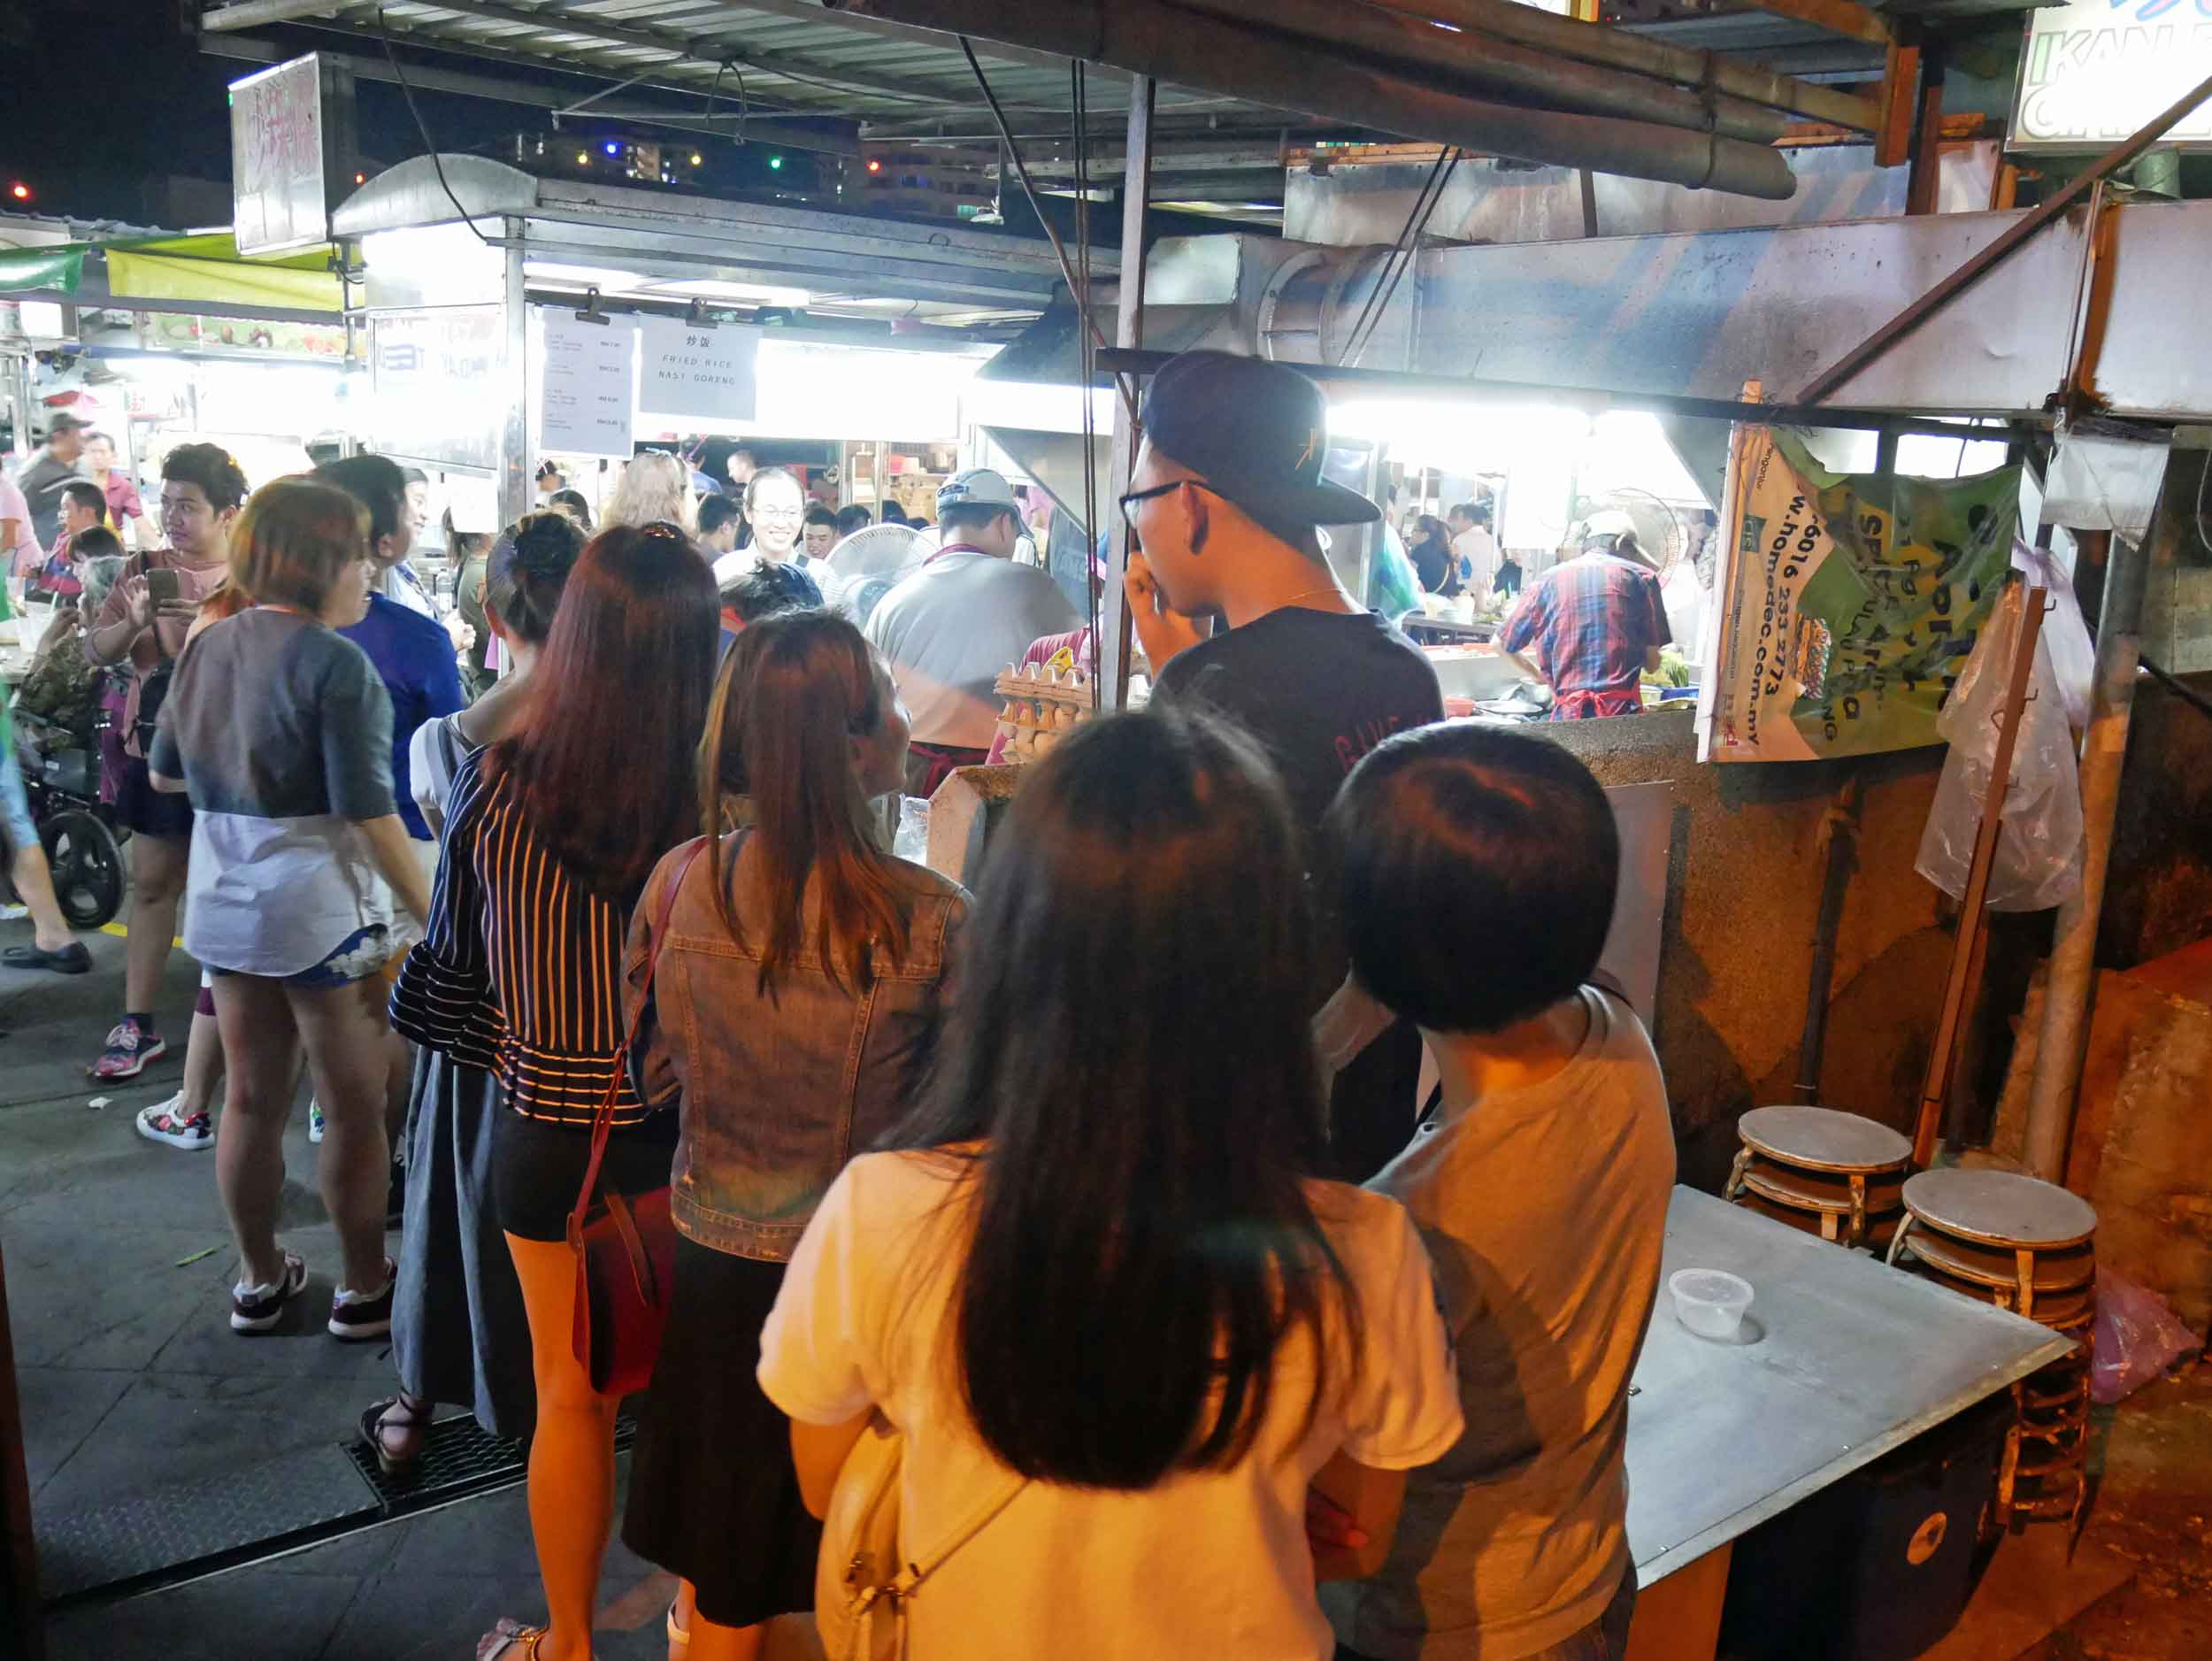 After China House, we once again hit the streets, this time at the famous Gurney Drive hawker stalls.